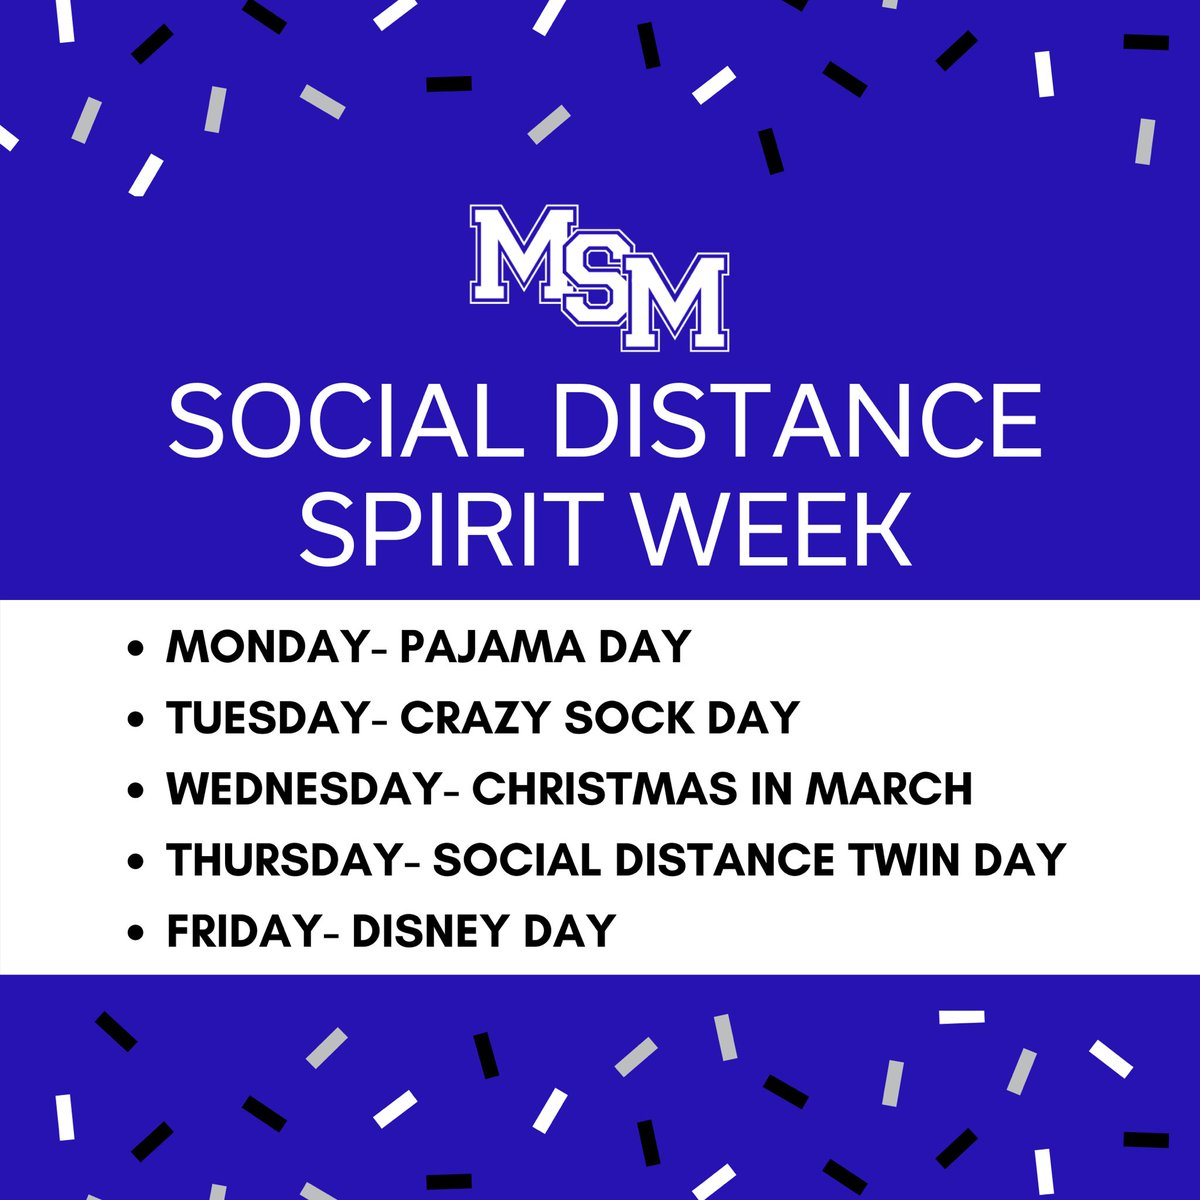 Let's have some fun! In true Rocket fashion, we are keeping the school pride and fun going... even if we can't be together! Tag @mountstmary in your daily posts on any/all social media platforms to participate! The staff will be voting on daily winners! Rocket Pride!! 🚀🎉